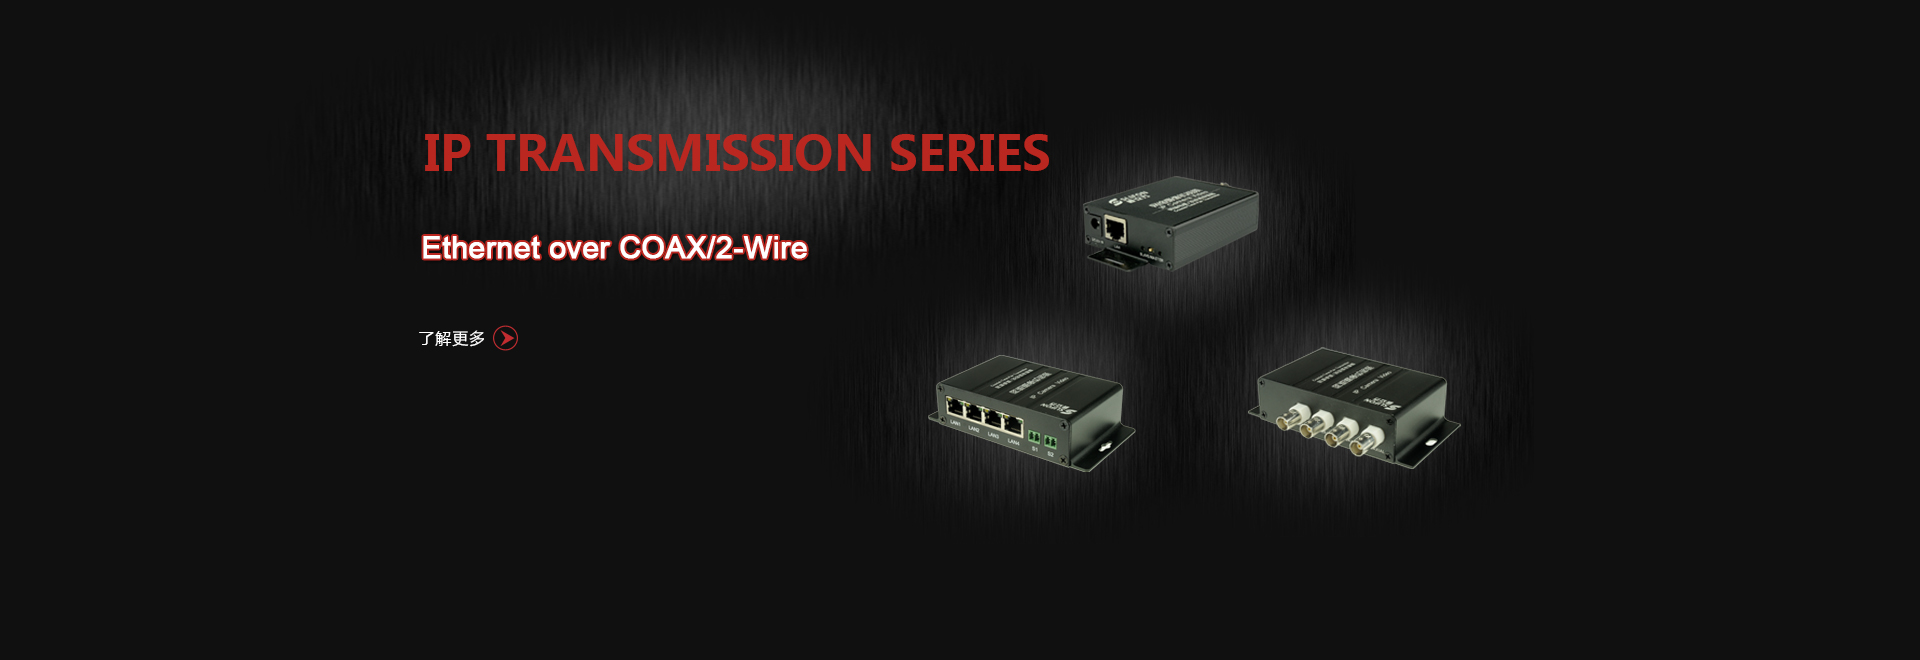 IP Transmission Series